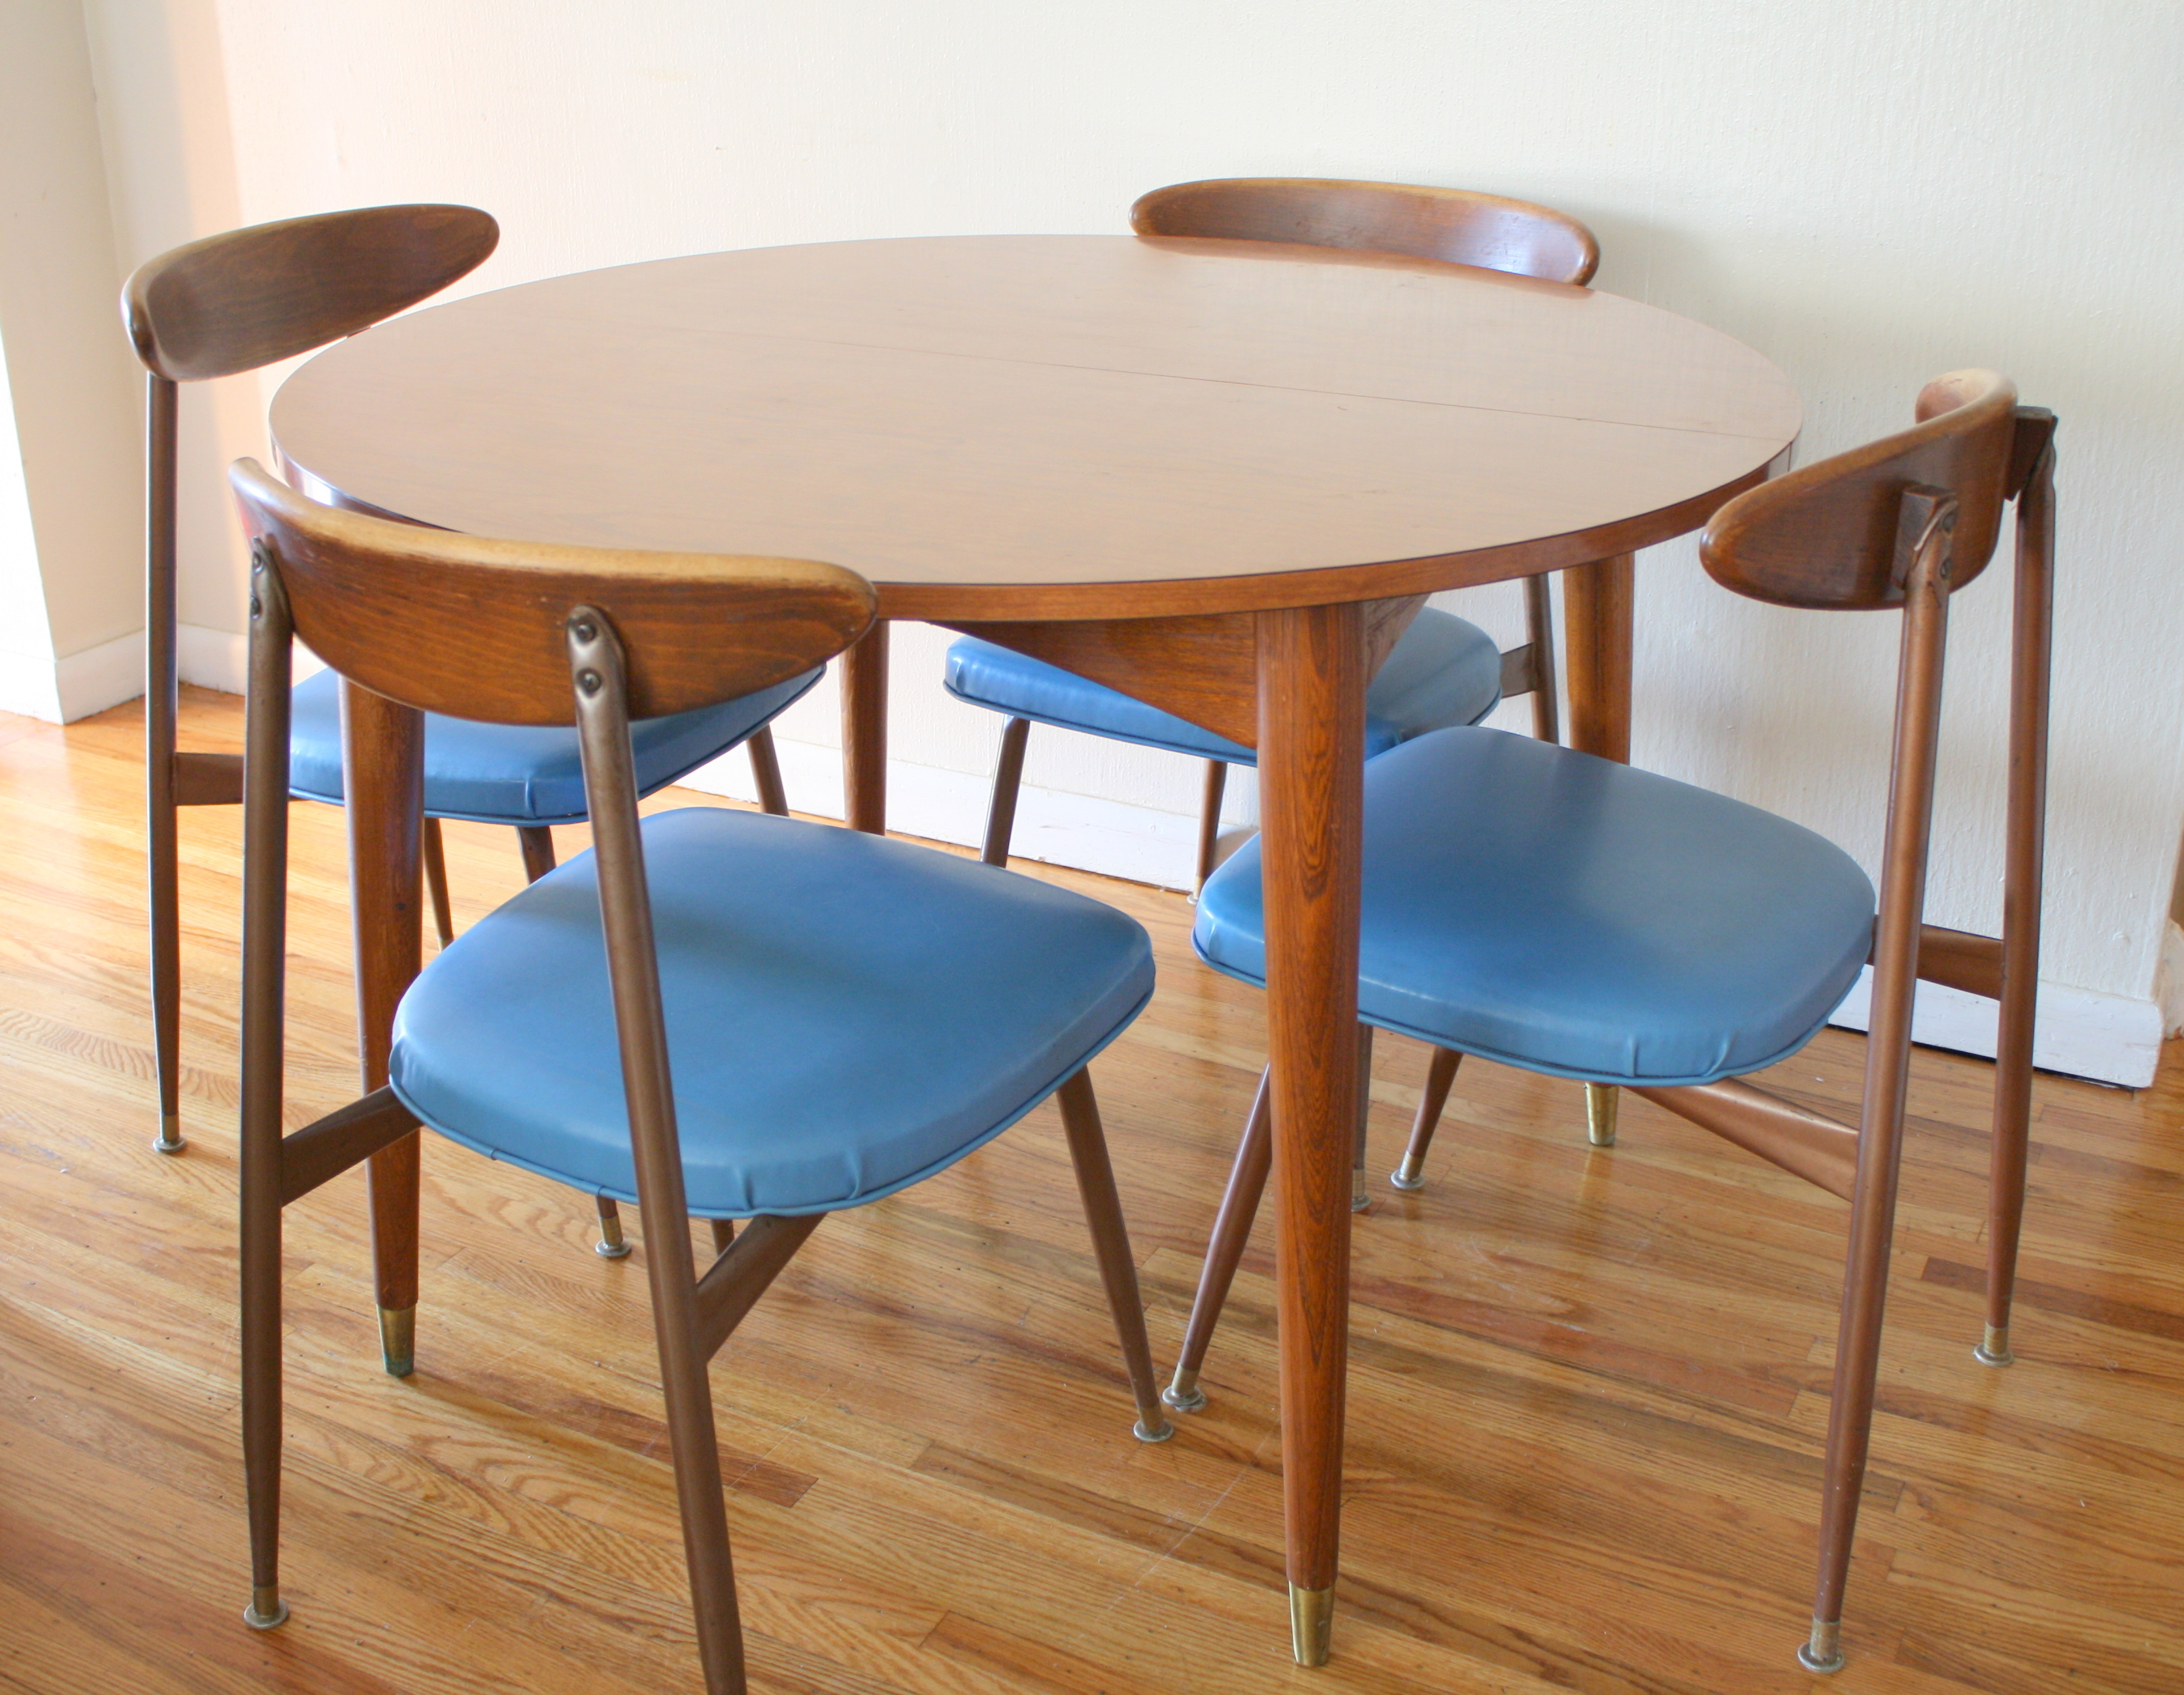 Modern Table Chairs Mid Century Modern Viko Chairs And Dining Table Picked Vintage